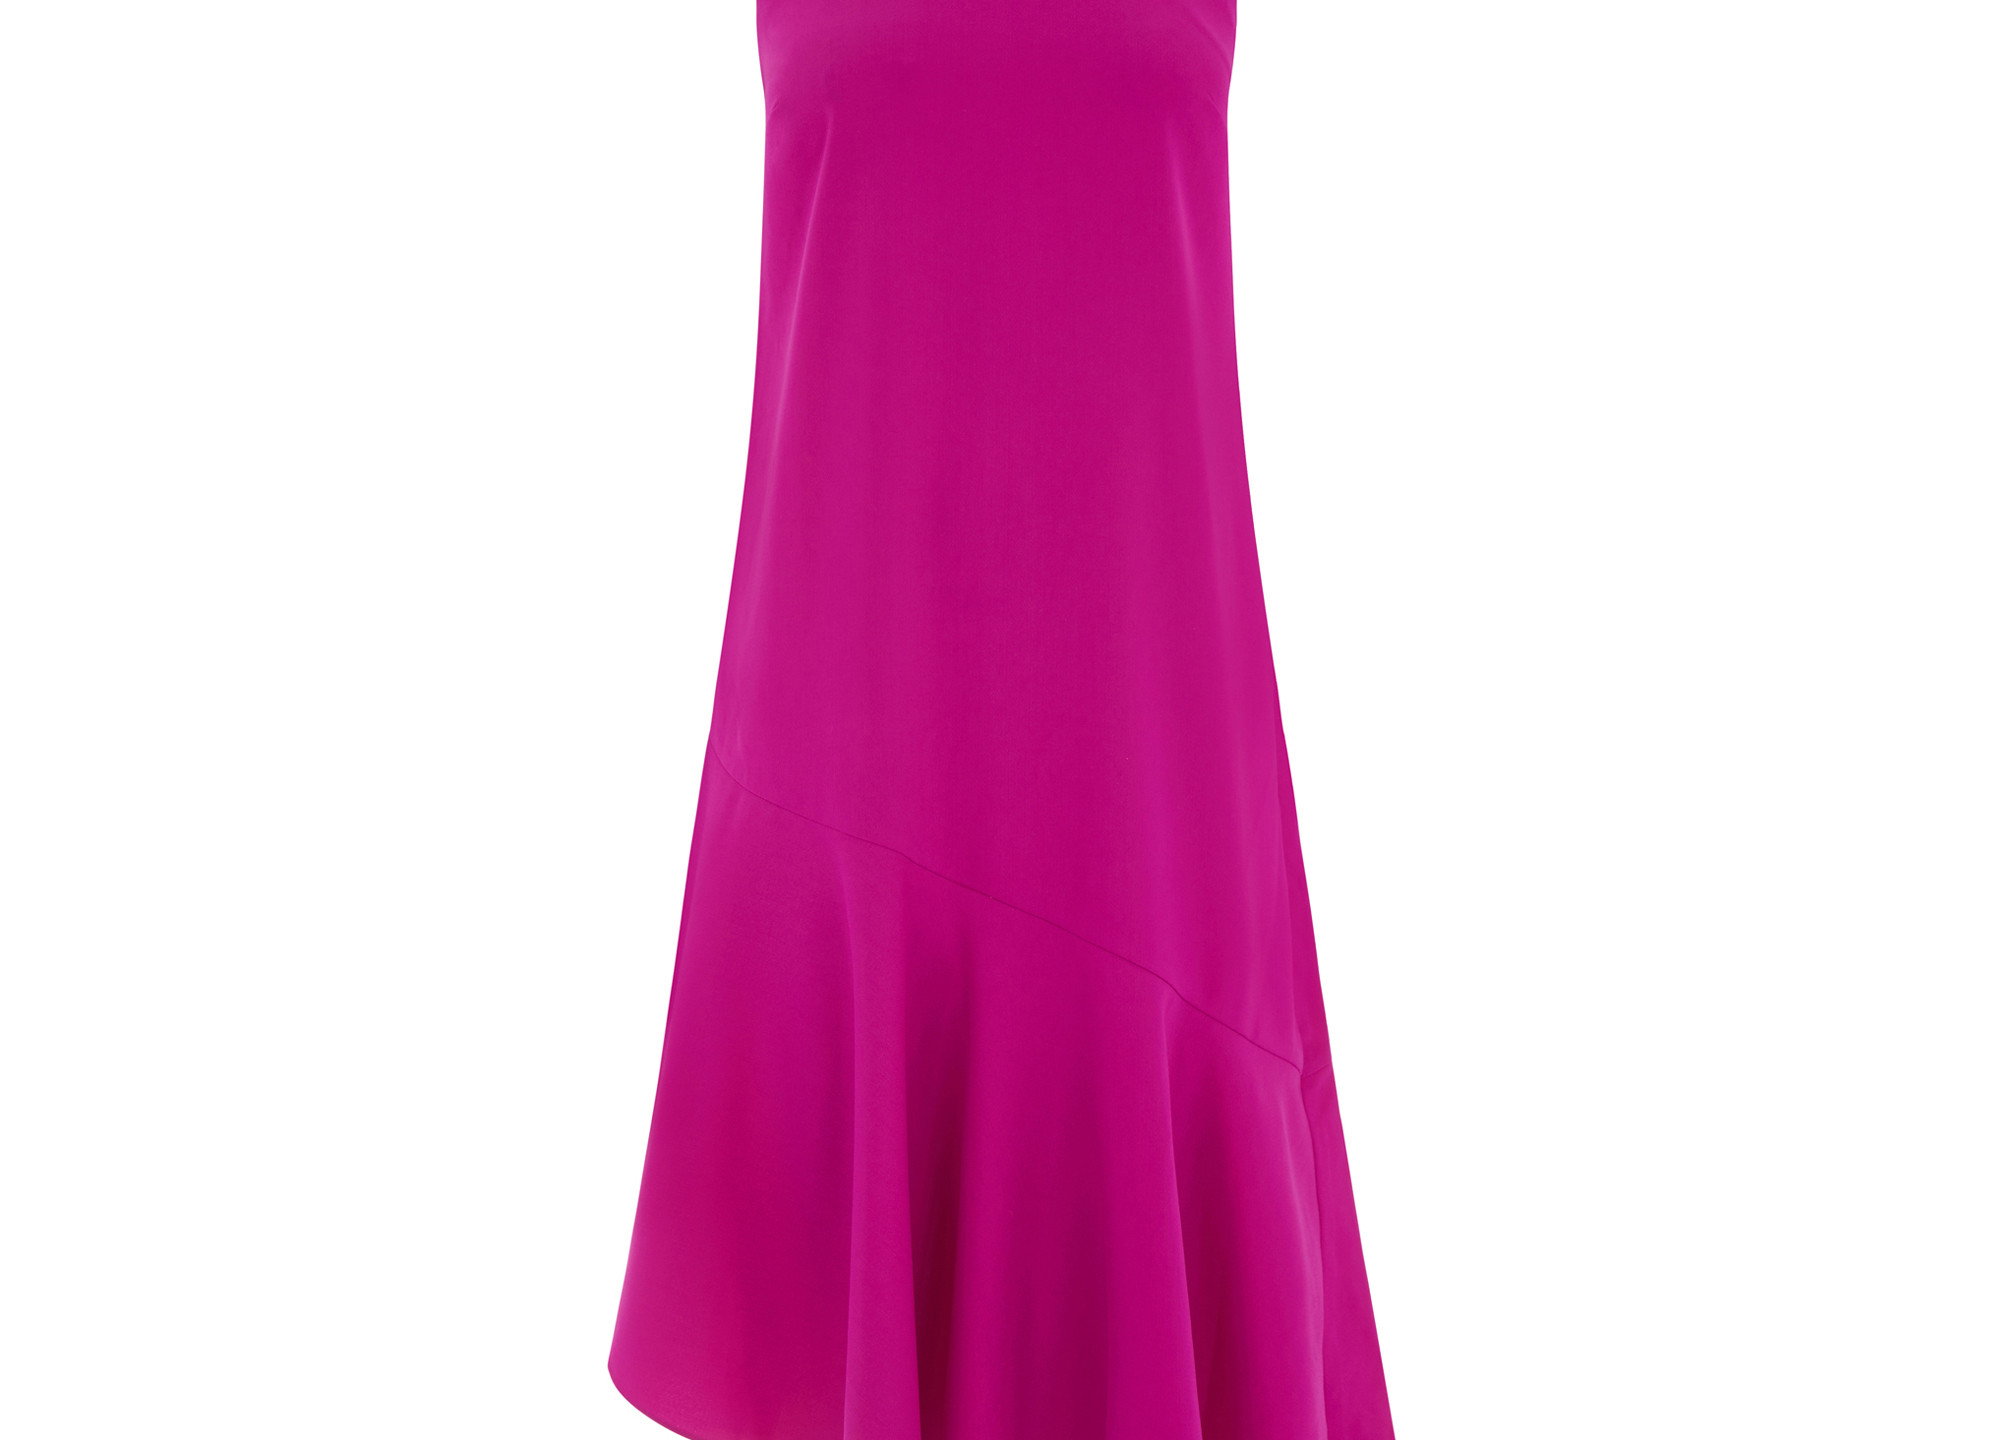 Play around with different lengths RUFFLE HEM DRESS £69, WAREHOUSE AT VOISINS